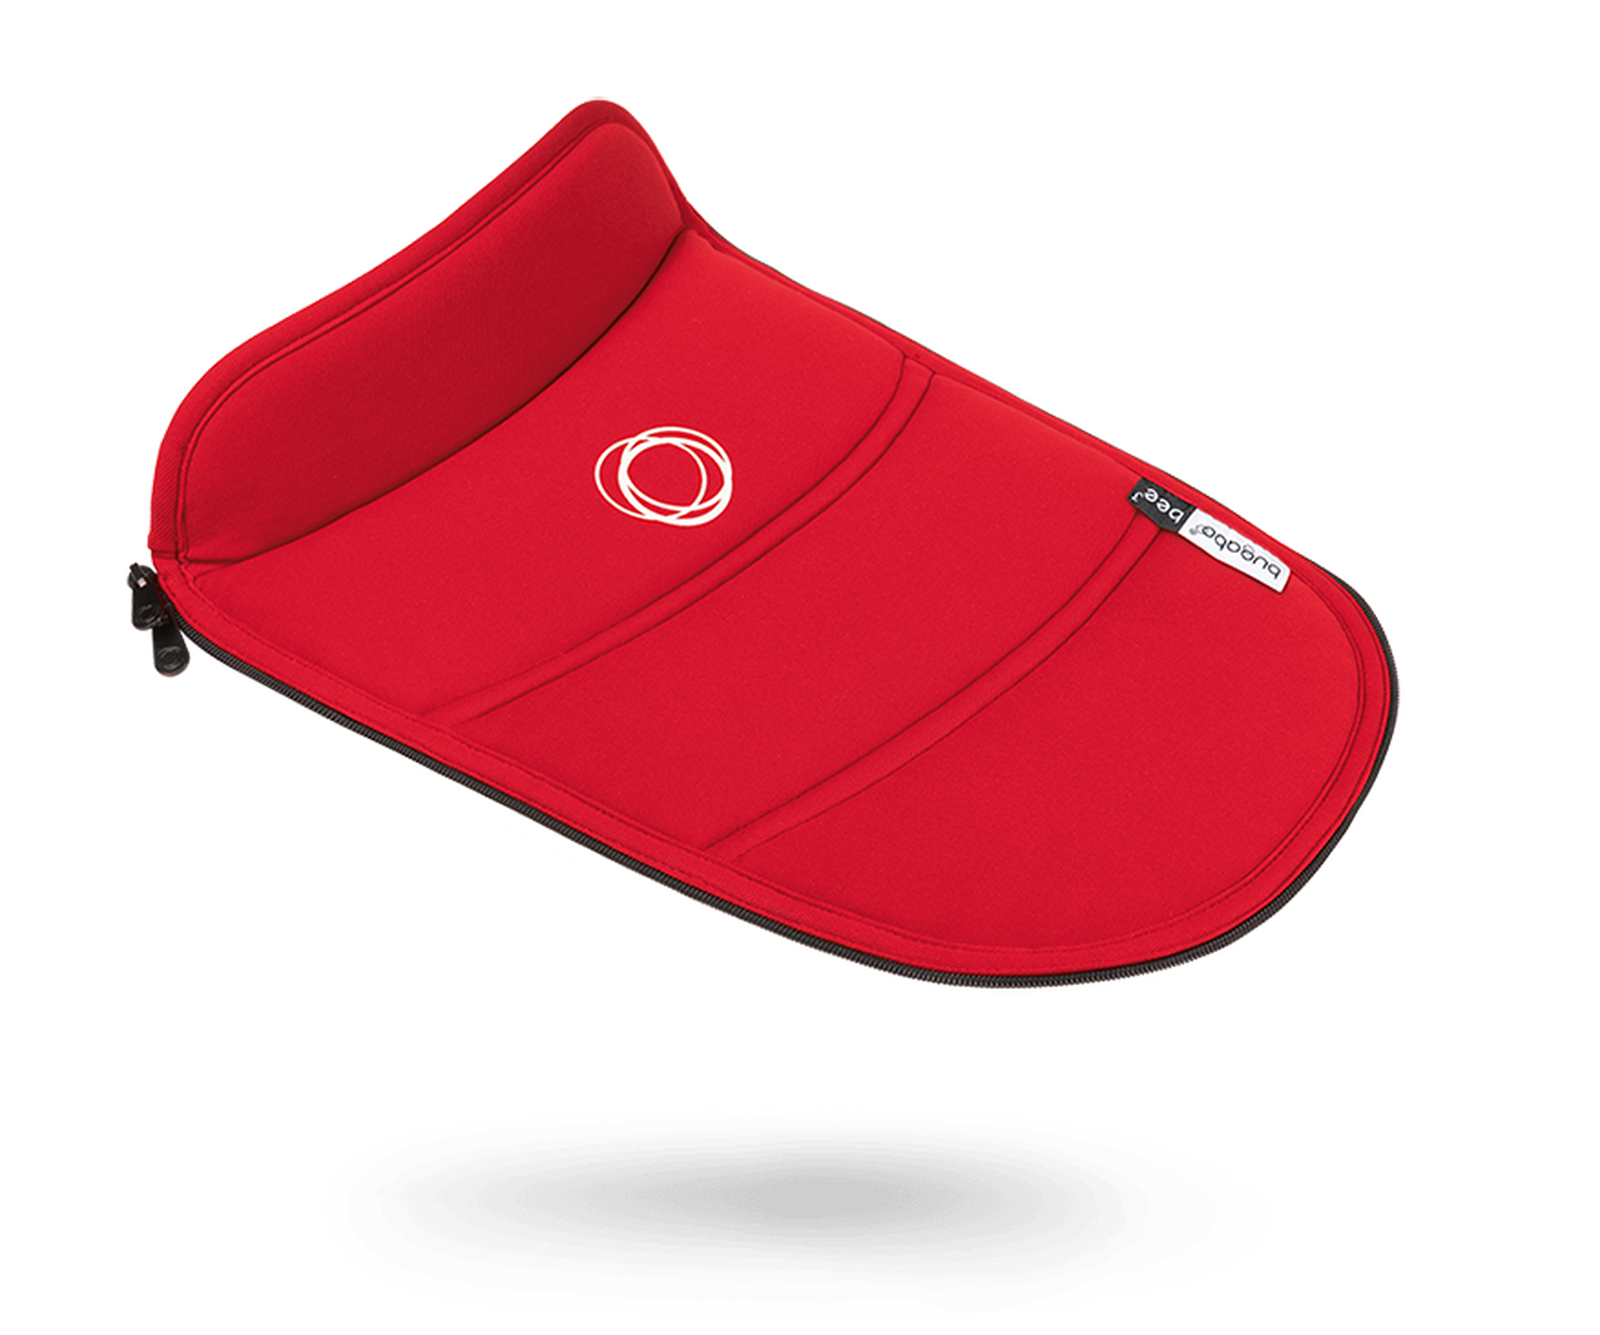 Bugaboo Bee 3 bassinet apron Red